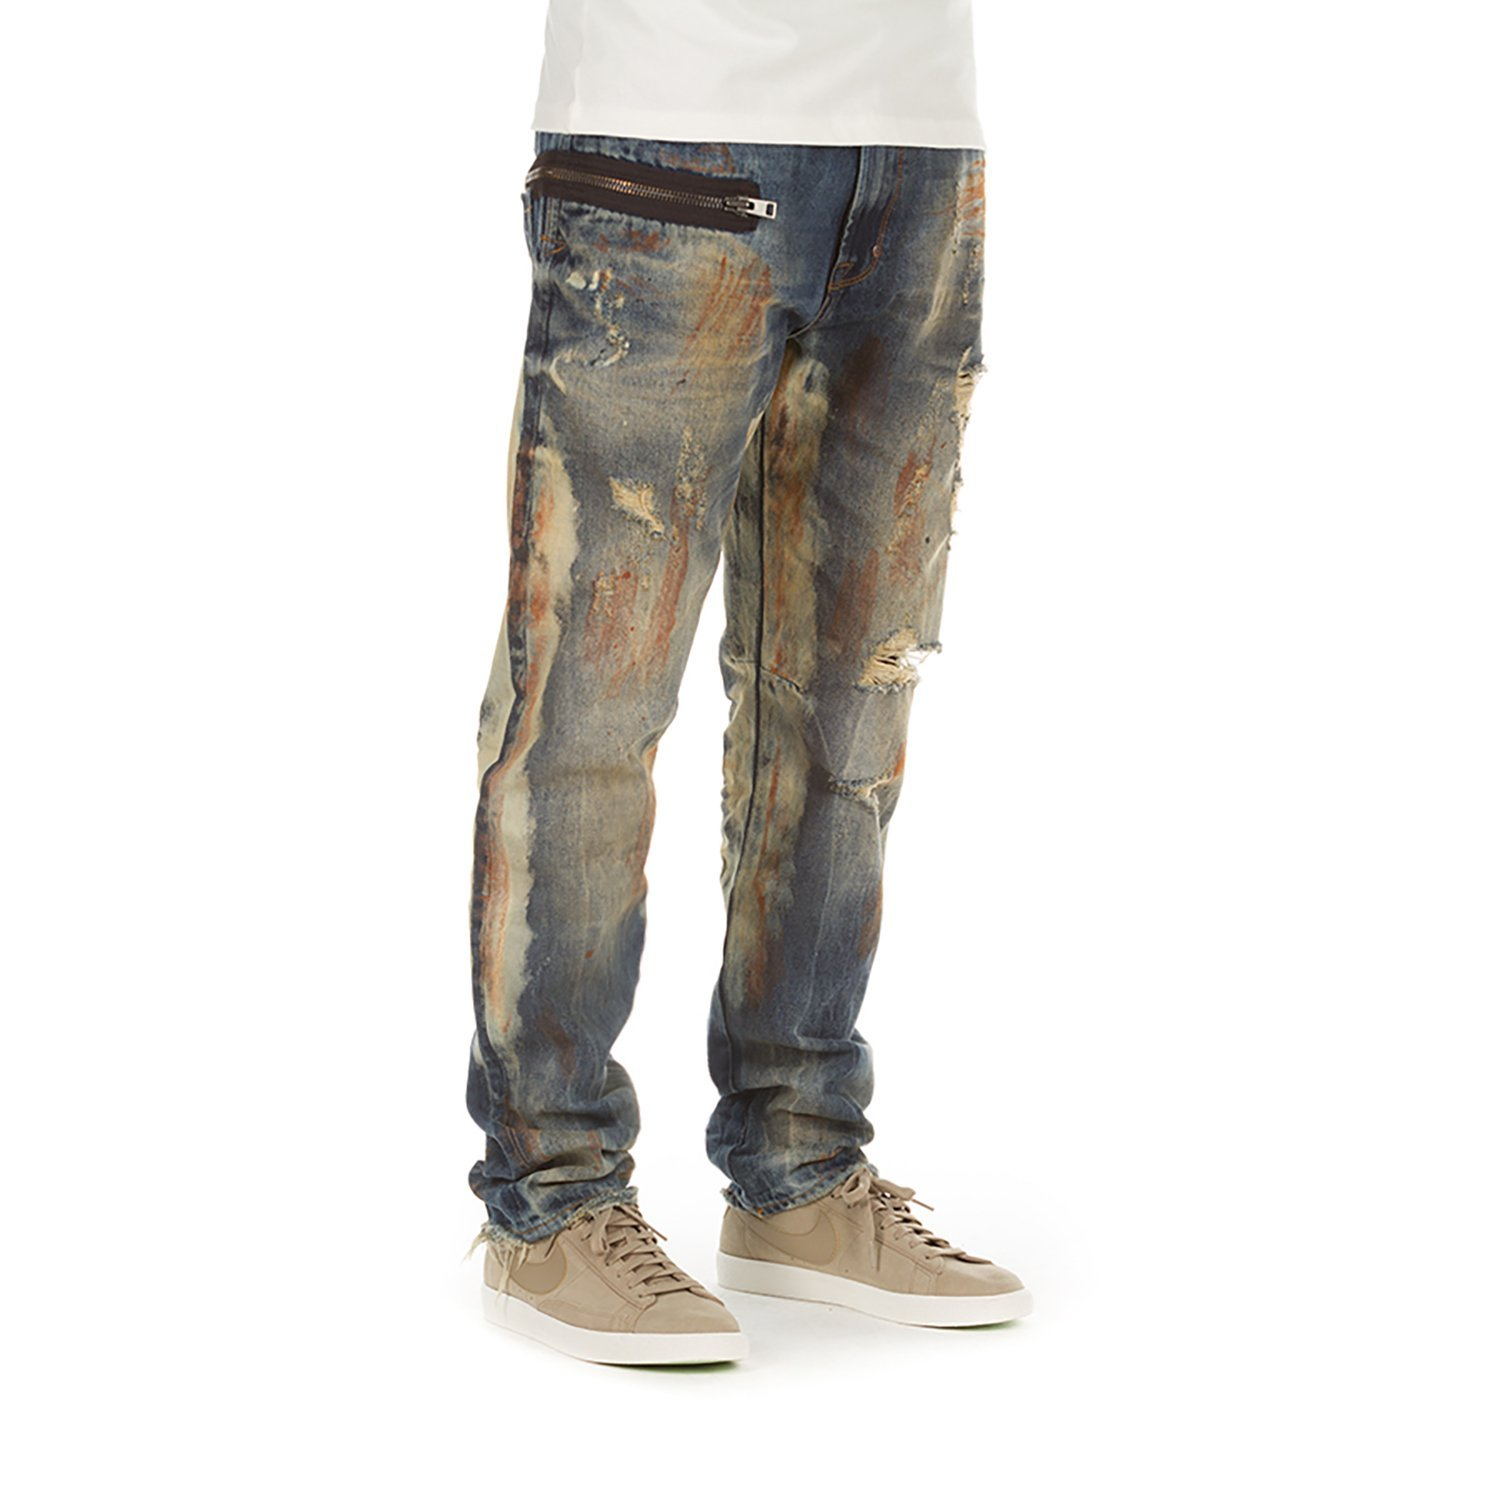 e72bb62ee59 Get Quotations · Akoo Namimbia Jeans In EL Dorado Distressed 781-2170